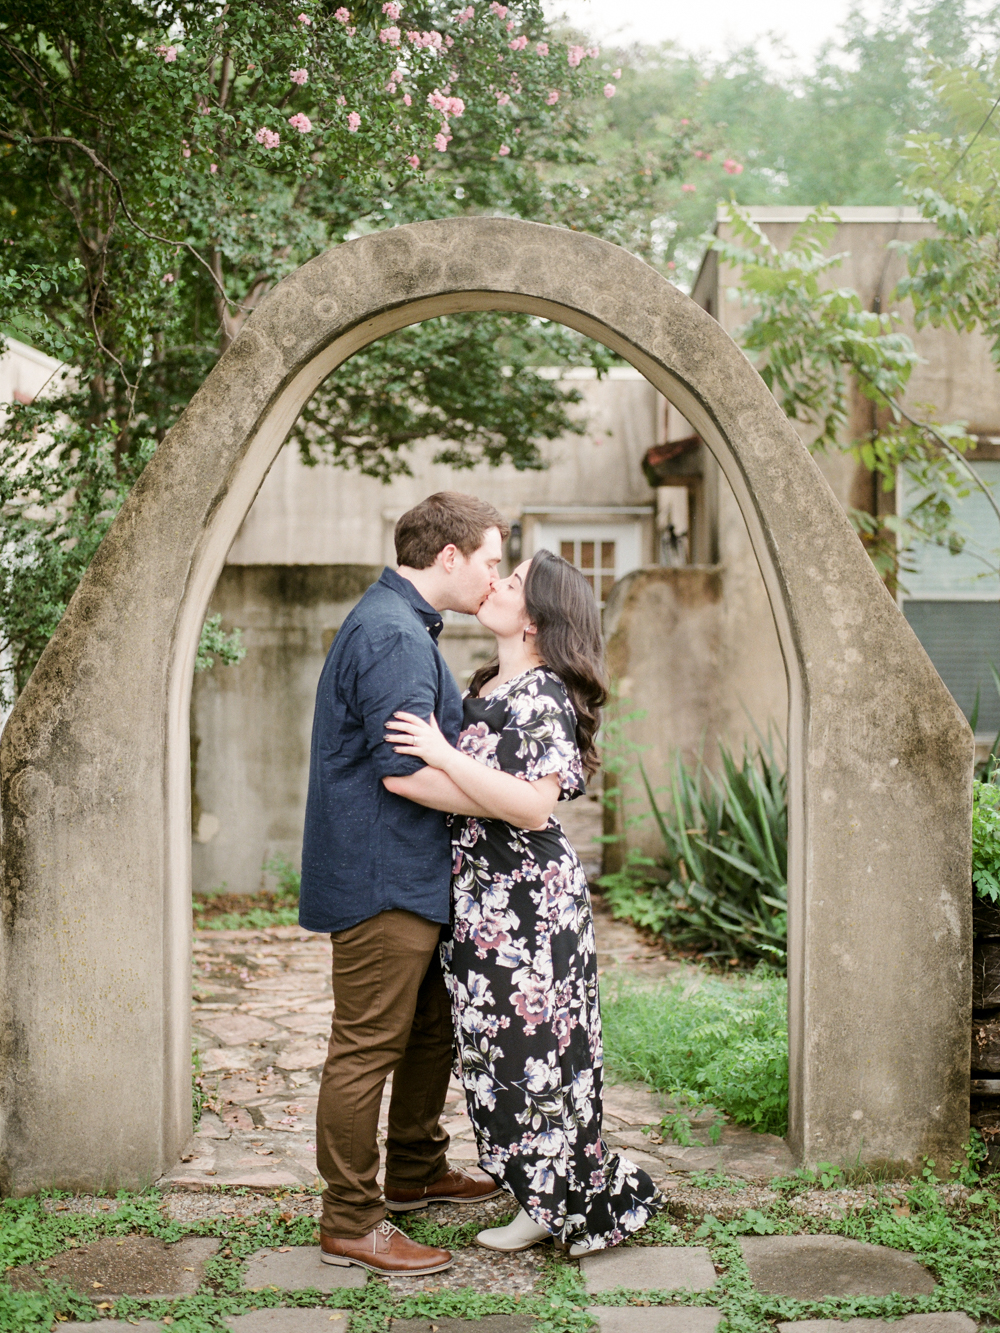 Christine Gosch - destination film photographer - houston wedding photographer - fine art film photographer - elopement photographer - destination wedding - understated wedding - simple beautiful wedding photography-5.jpg